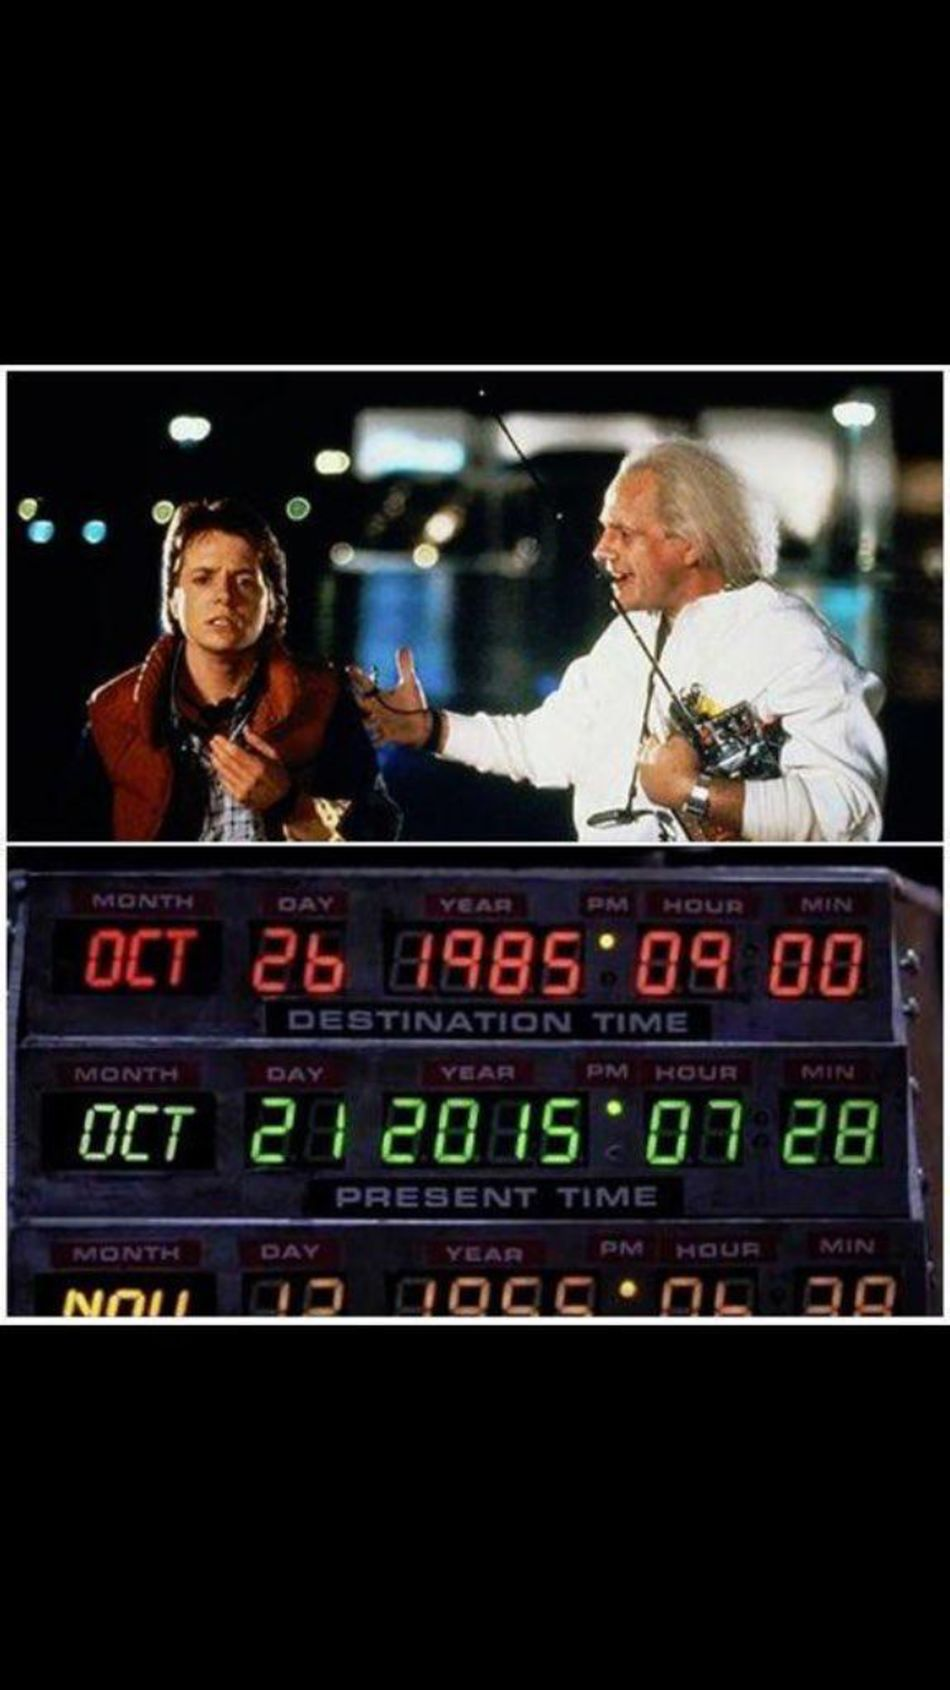 Bu filmi herkes iyi bilir bu arada filmde geleceğe ayarlanan tarihi hatırlayan varmı? eee nerde uçan kaykaylar ve sıcak hava veren montlar😀😀 #backtothefuture #michaeljfox #movie Backtothefuture MOVIE Michaeljfox Adana Seyhan First Eyeem Photo Sinema Tarih  History Enjoying Life